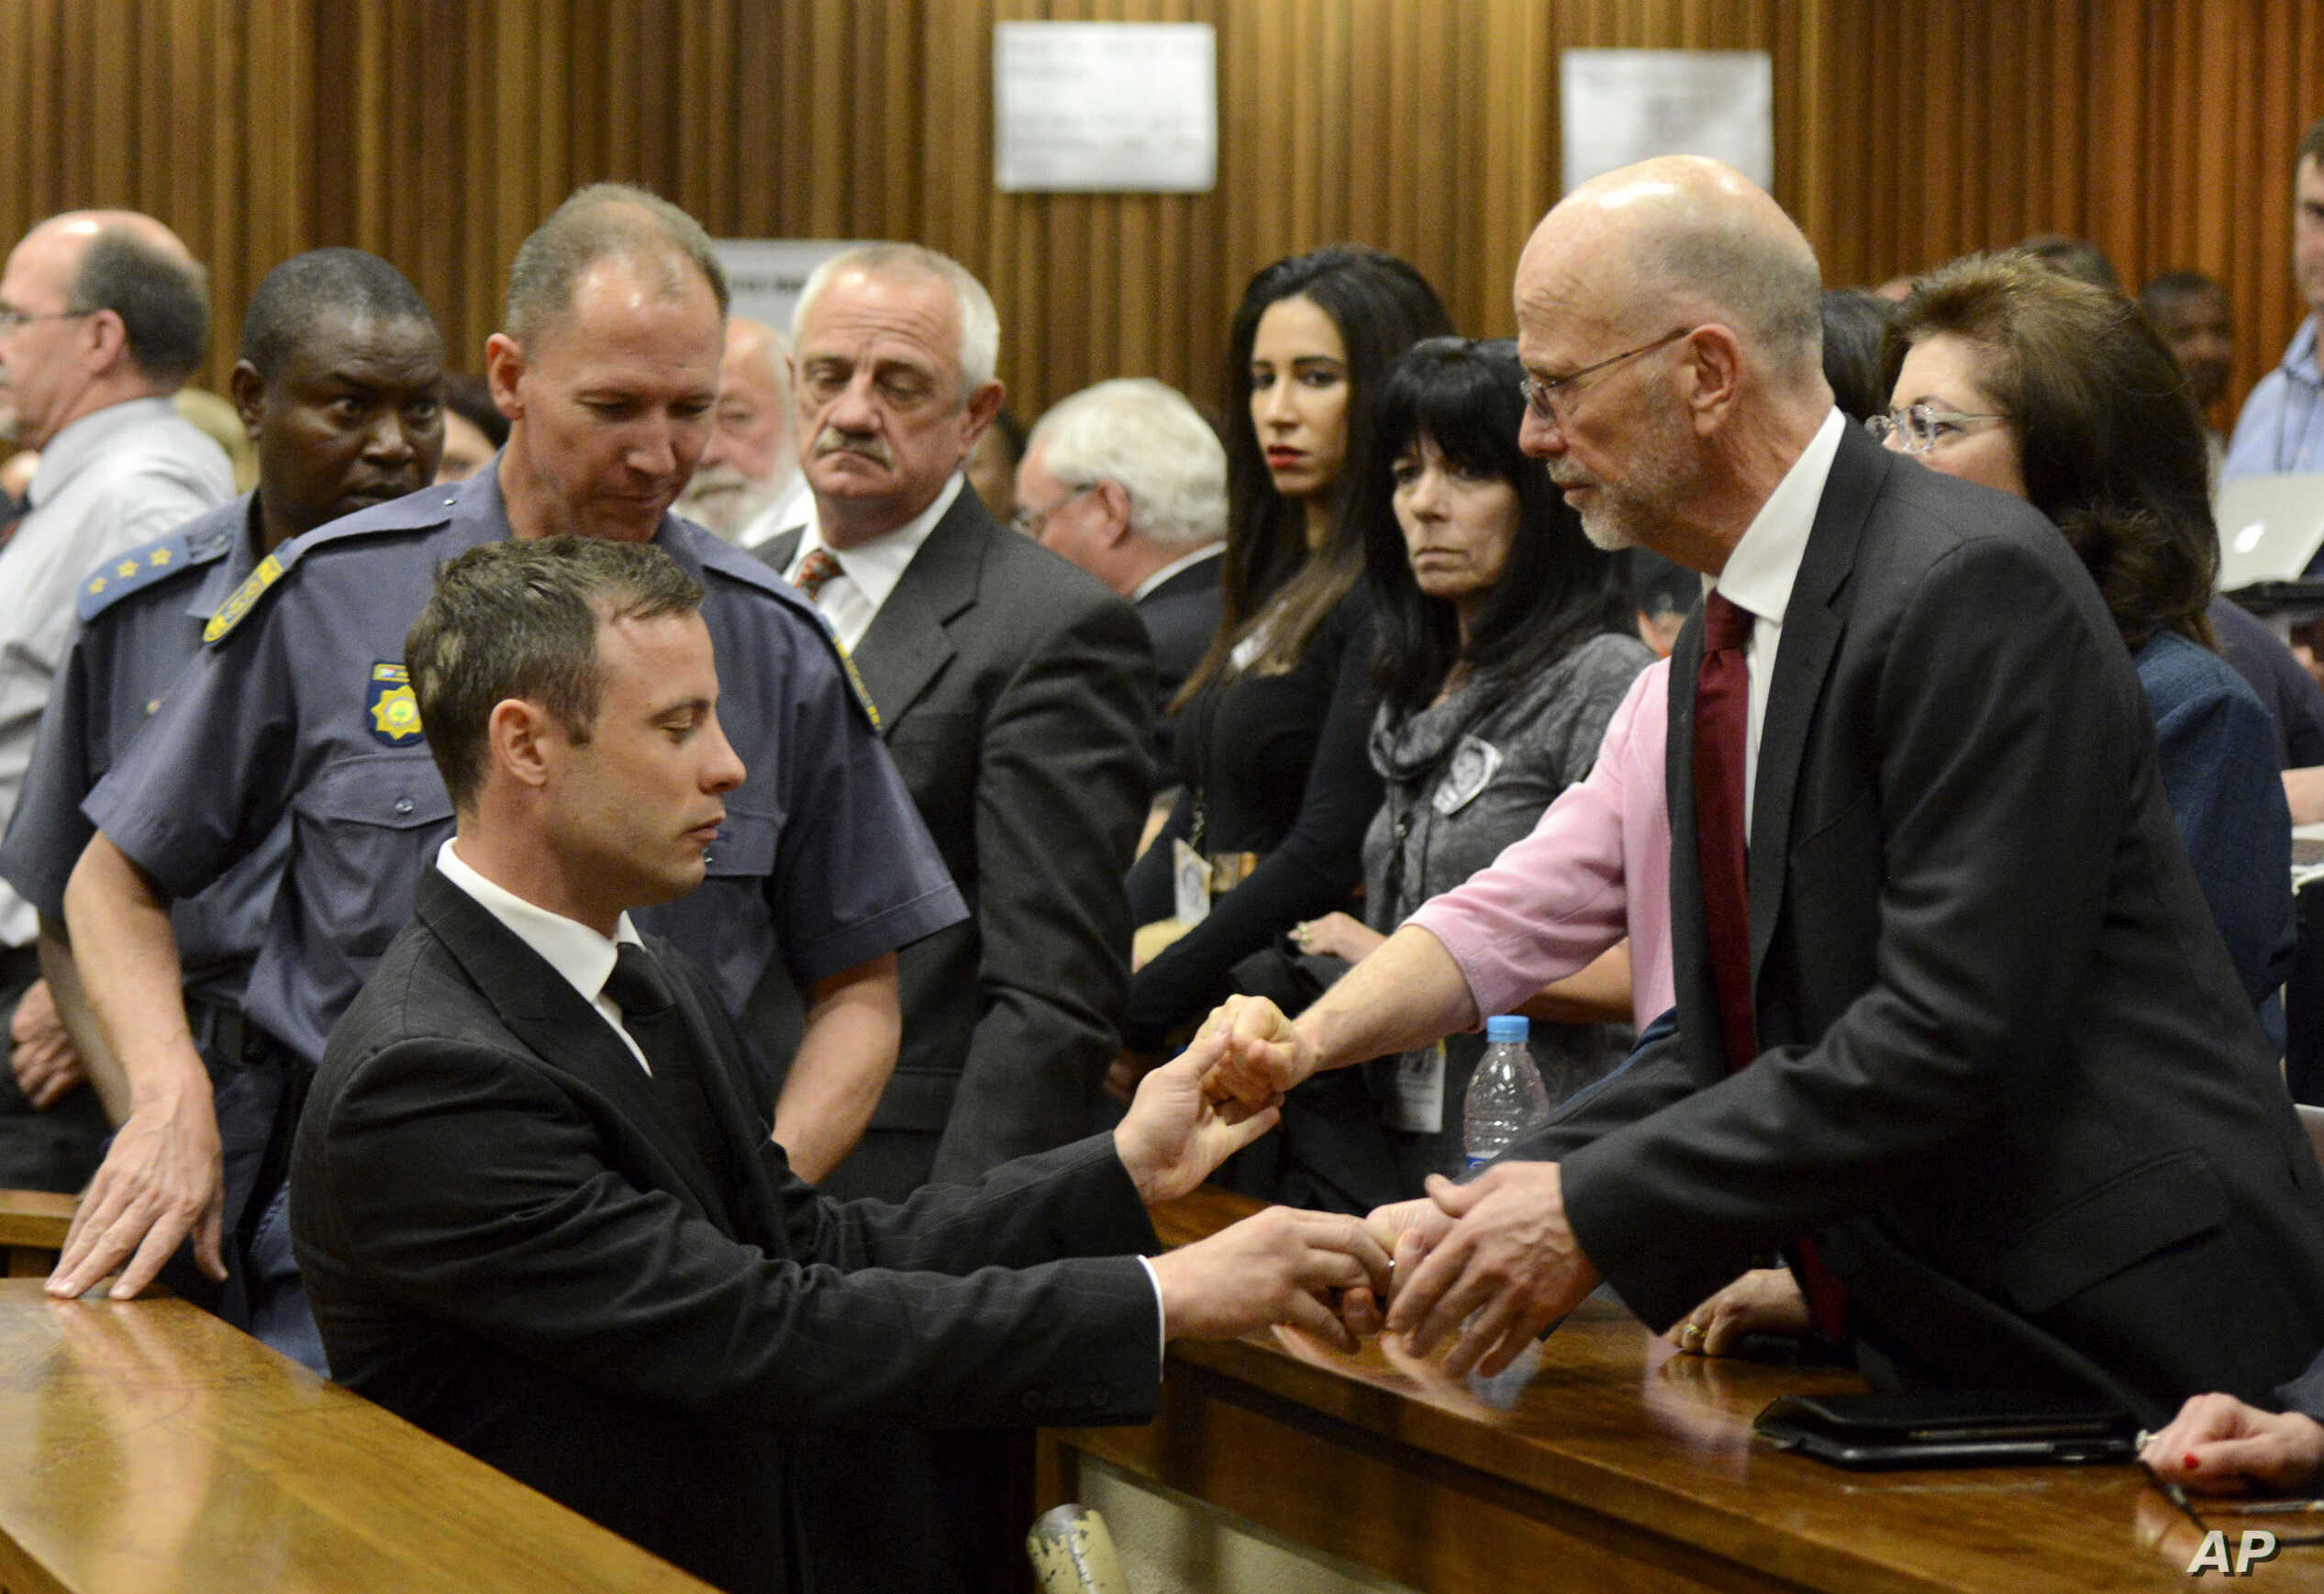 Oscar Pistorius, left front, greets his uncle Arnold Pistorius, right, and other family members as he is led out of court in Pretoria, South Africa, Oct. 21, 2014. Pistorius received a five-year prison sentence for culpable homicide by Judge Thokozil